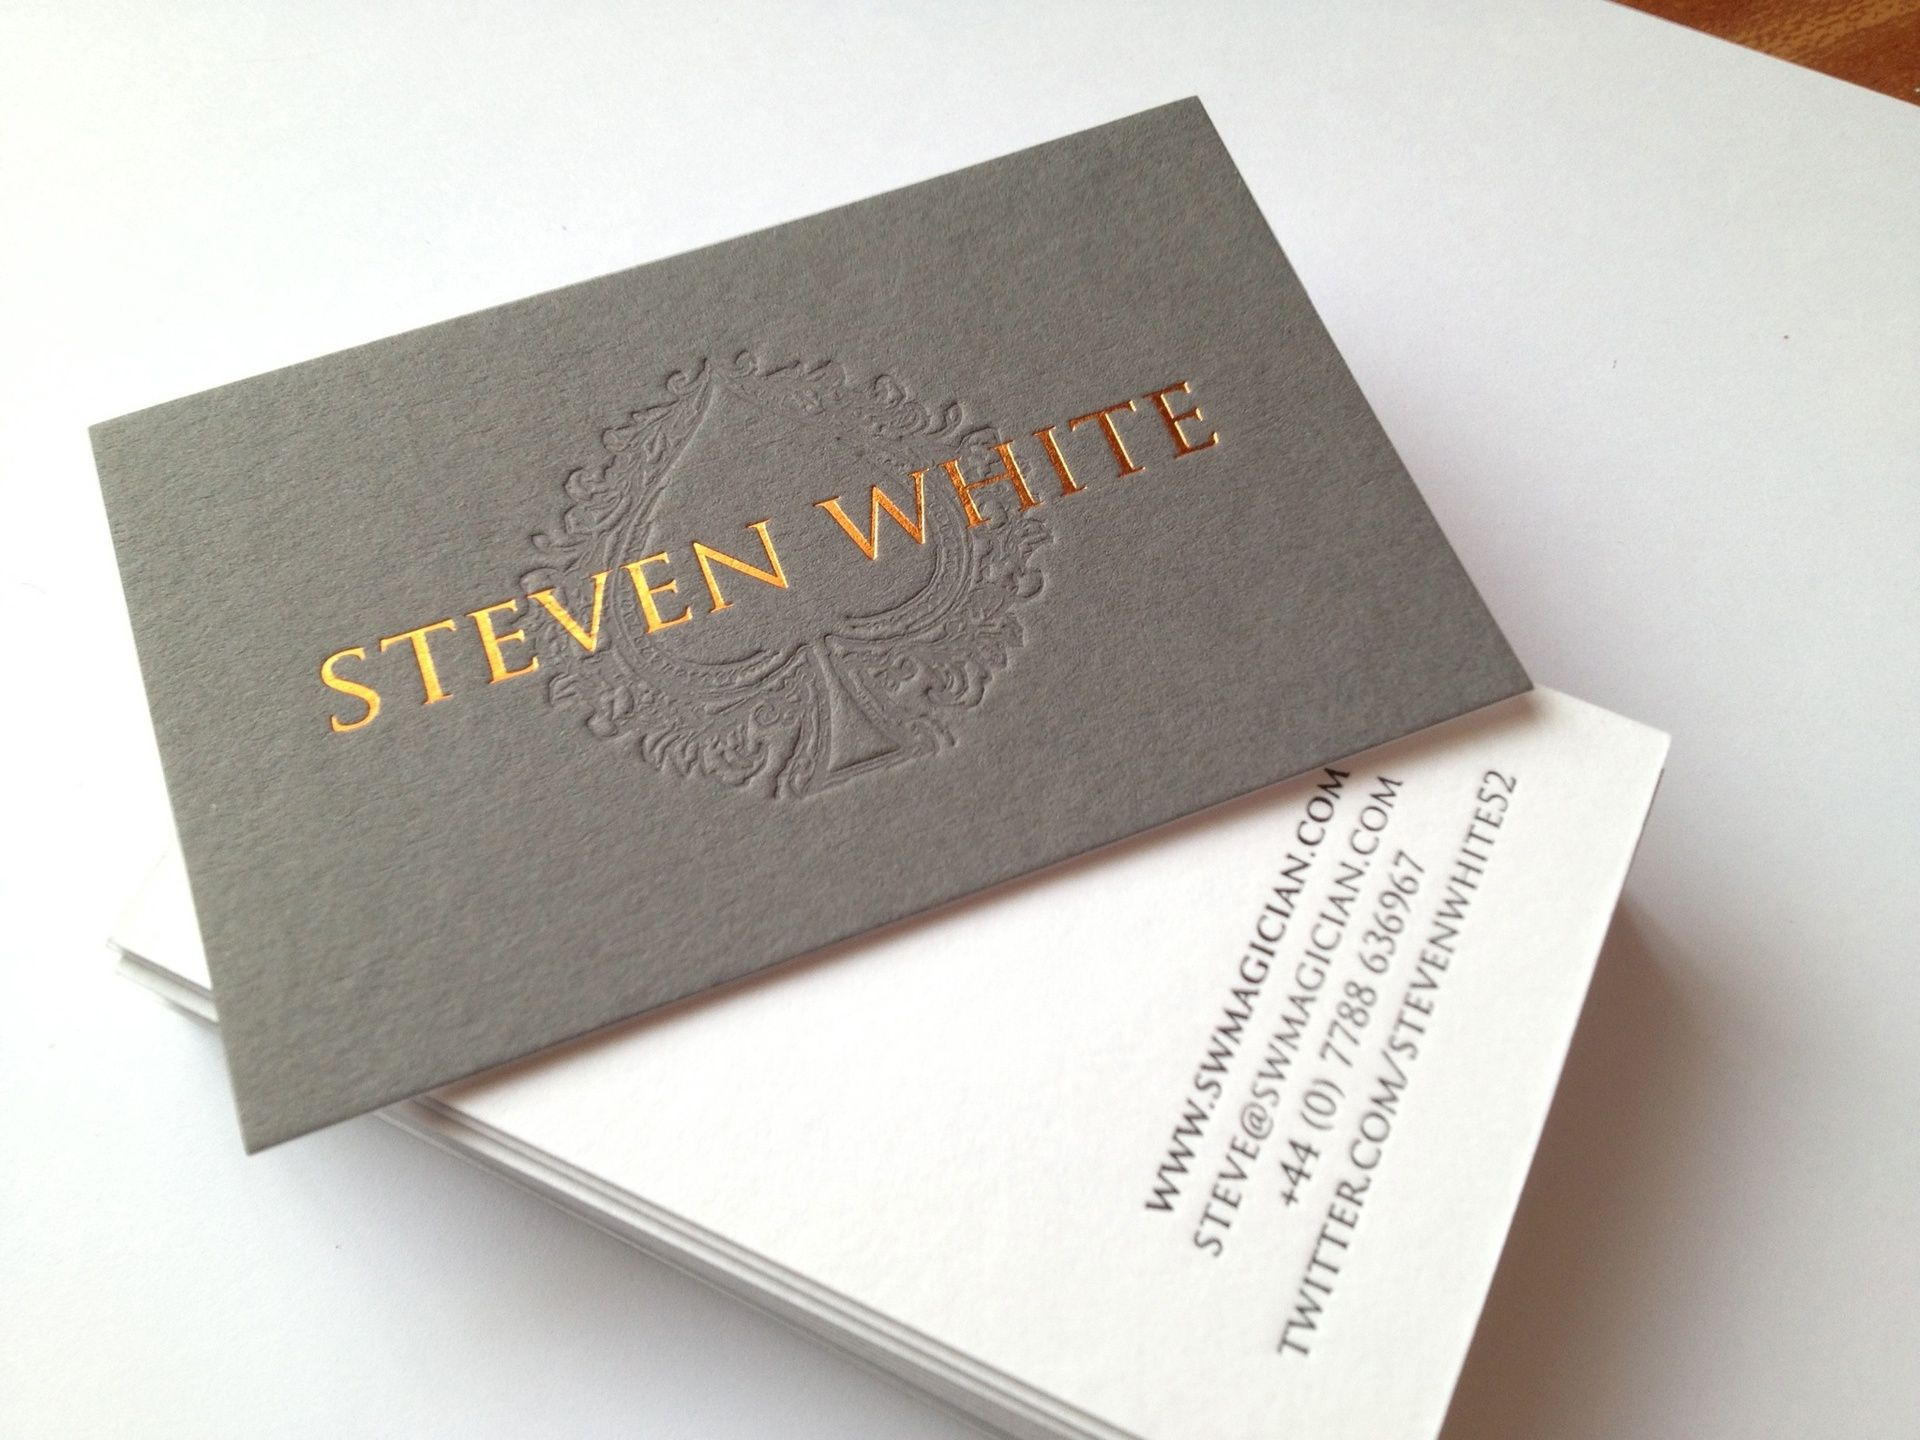 Gold Embossed Business Card Jpg 1920 1440 Gold Foiled Onto Pale Grey Duplexed Onto White Colorful Business Card Embossed Business Cards Business Card Design